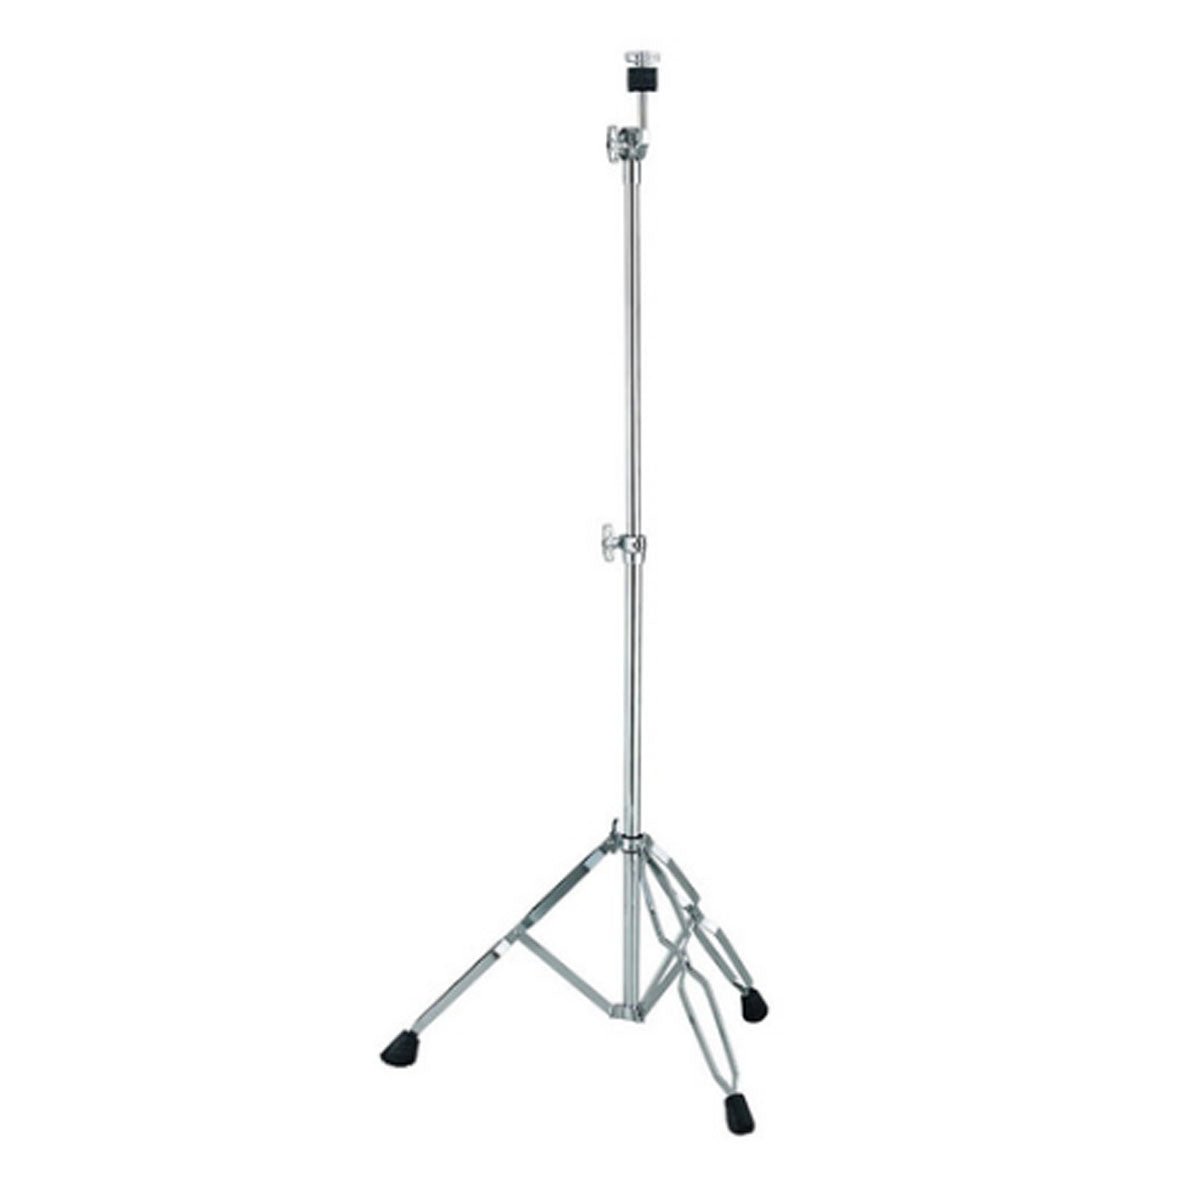 Dixon 9270 Series Straight Cymbal Stand Light-Weight Double Braced - PSY9270